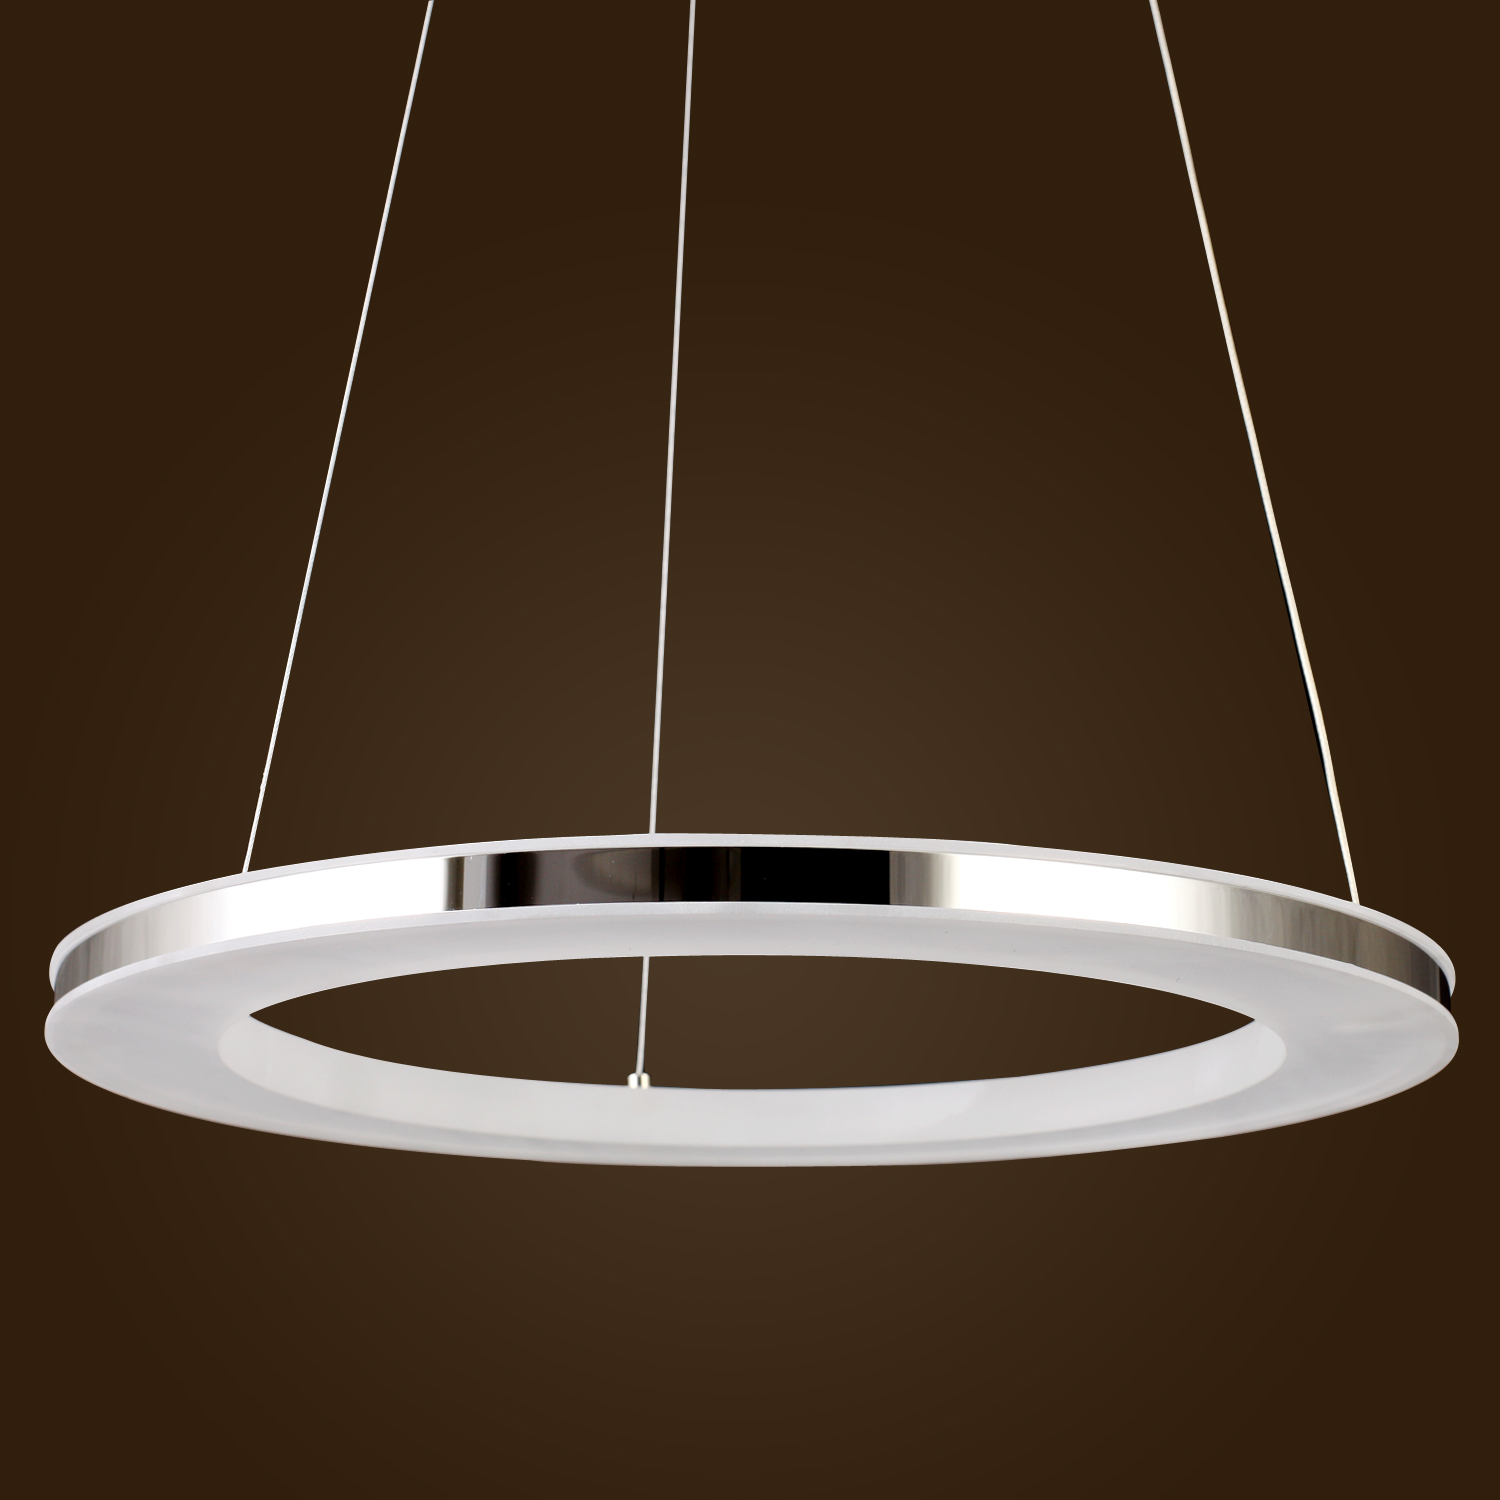 Acrylic led ring chandelier pendant lamp ceiling light Modern pendant lighting